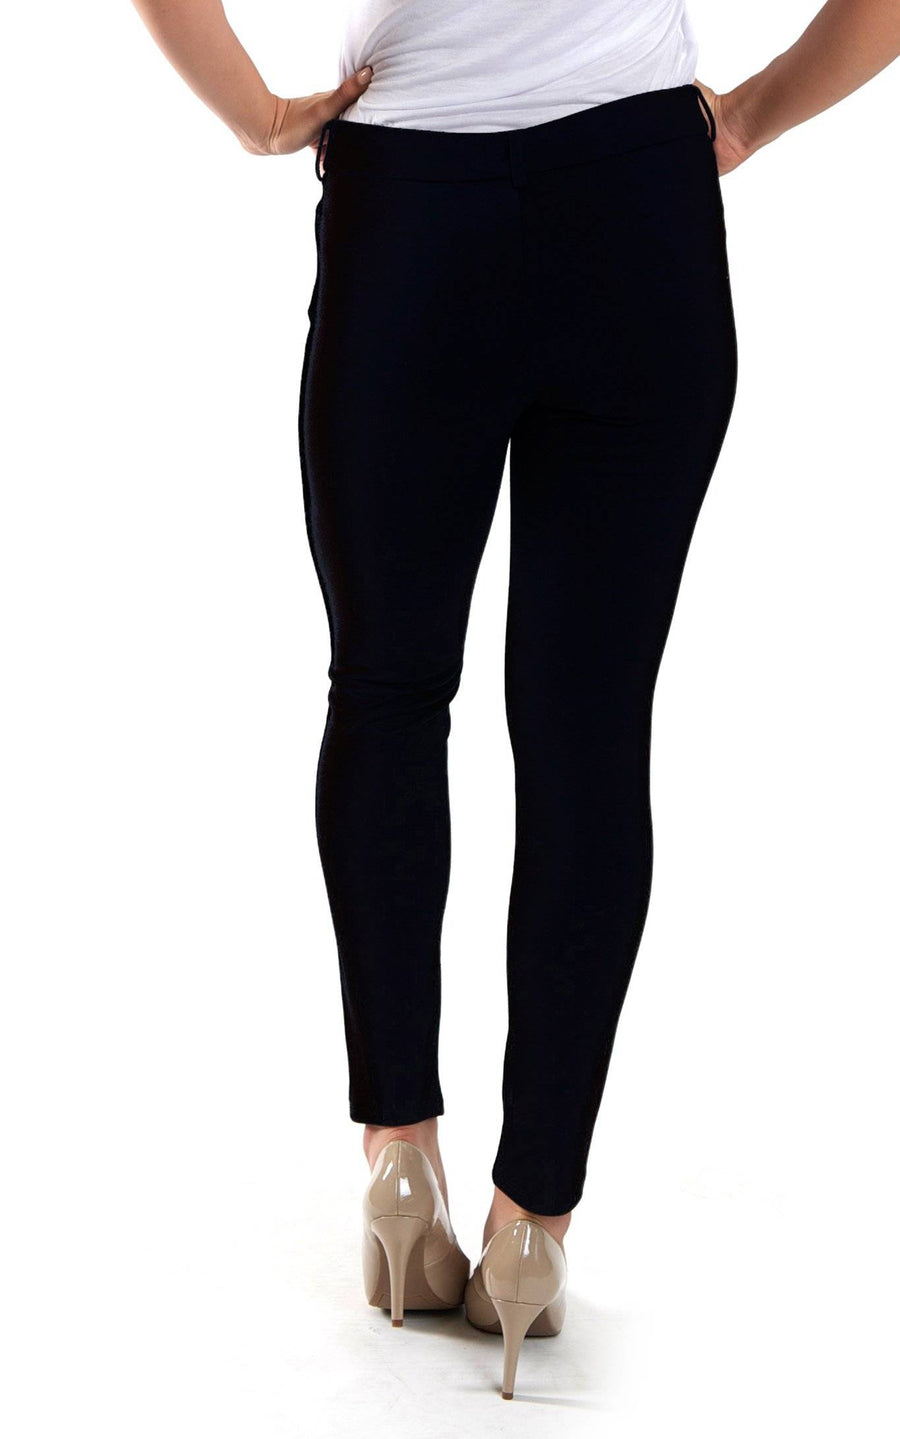 All For Color-Black Jo Tailored Pant - FINAL SALE-Bottoms